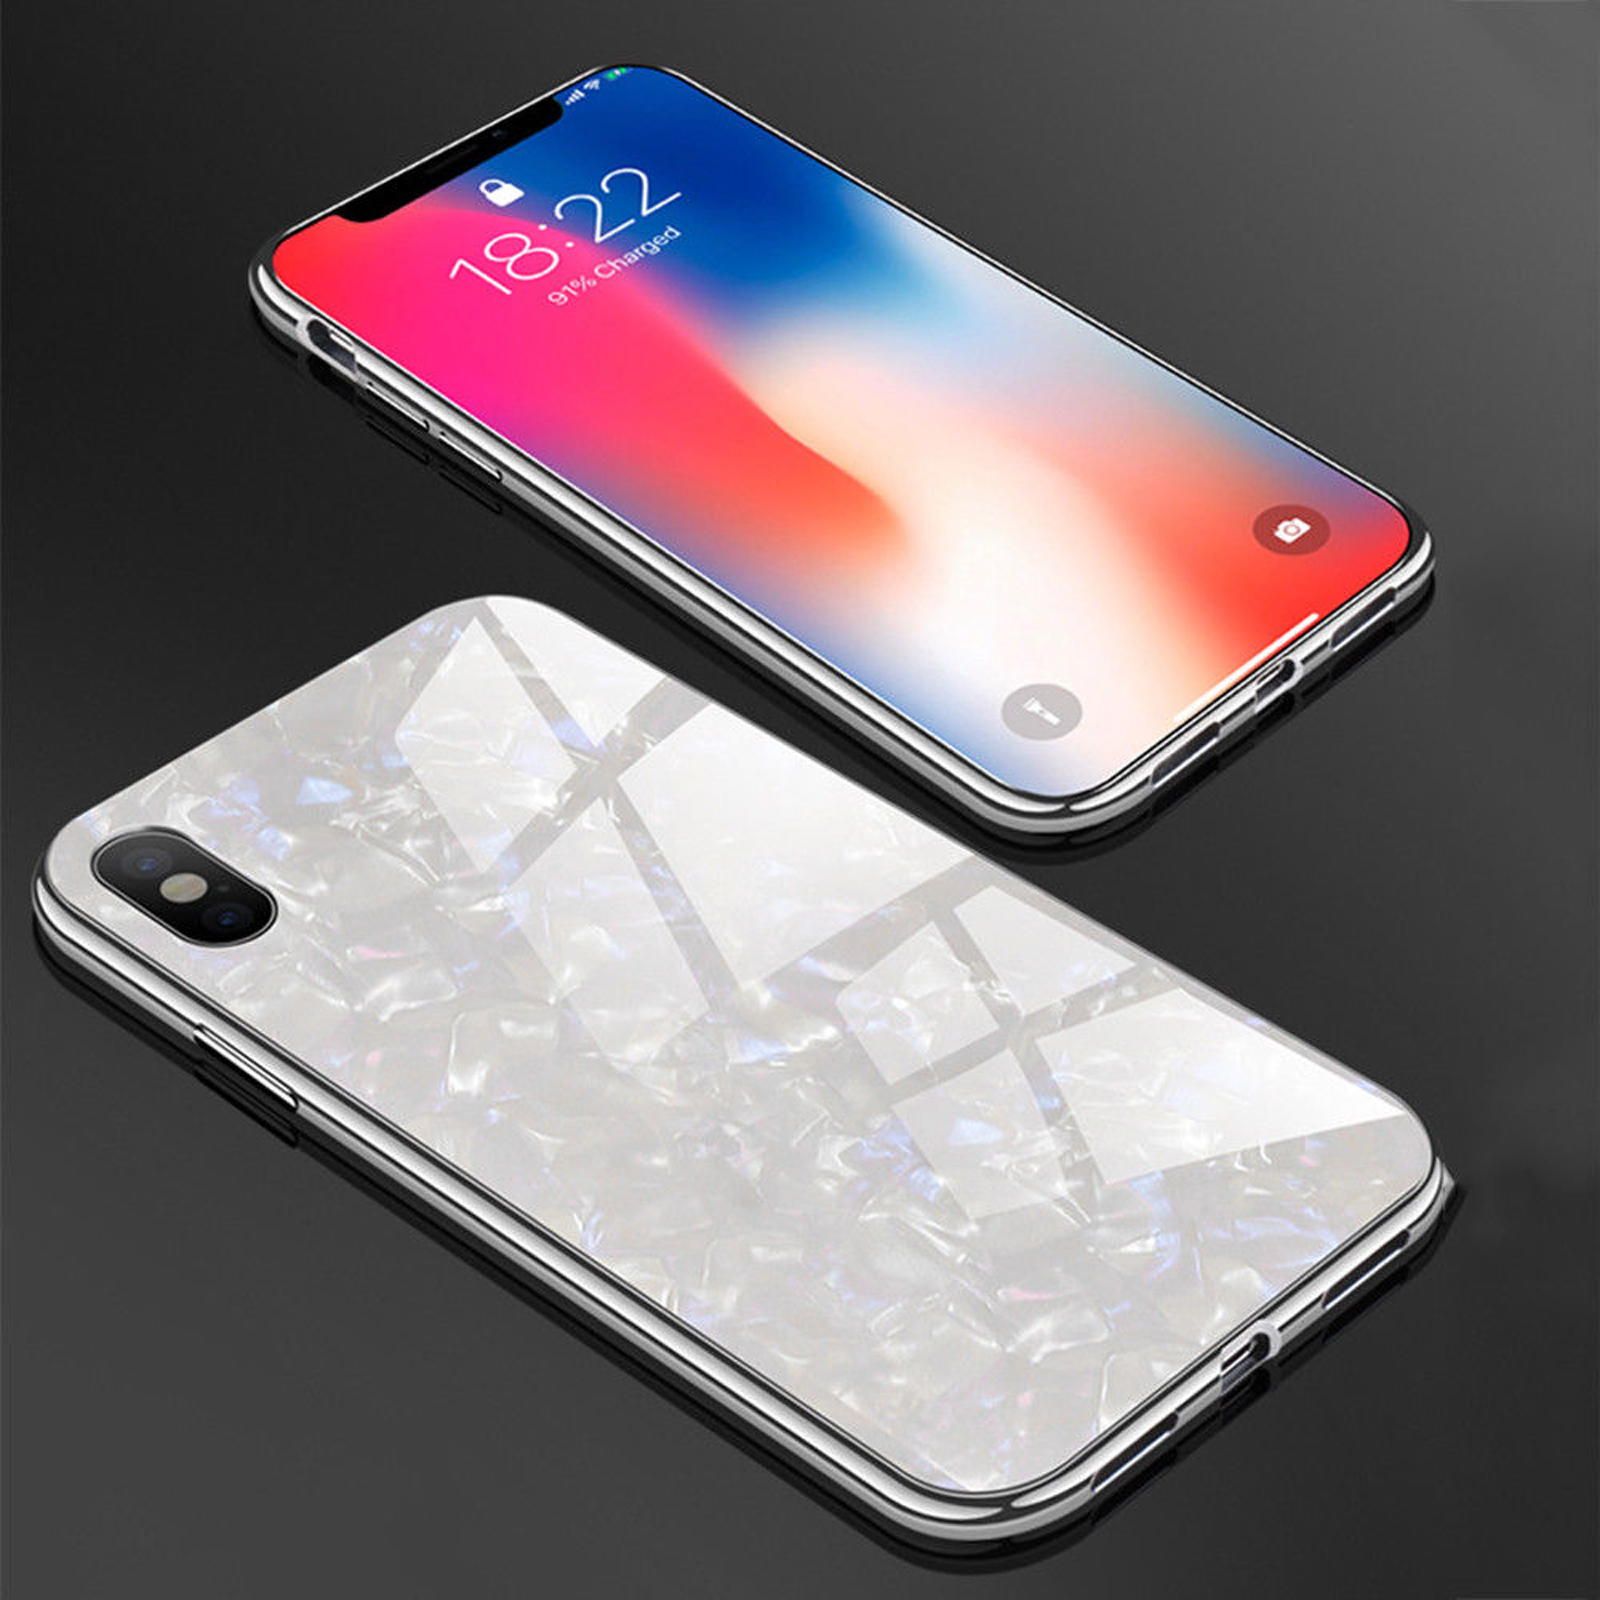 Luxury-Marble-Tempered-Glass-Case-Cover-For-Apple-iPhone-X-XS-XR-Max-10-8-7-6s-6 miniature 47